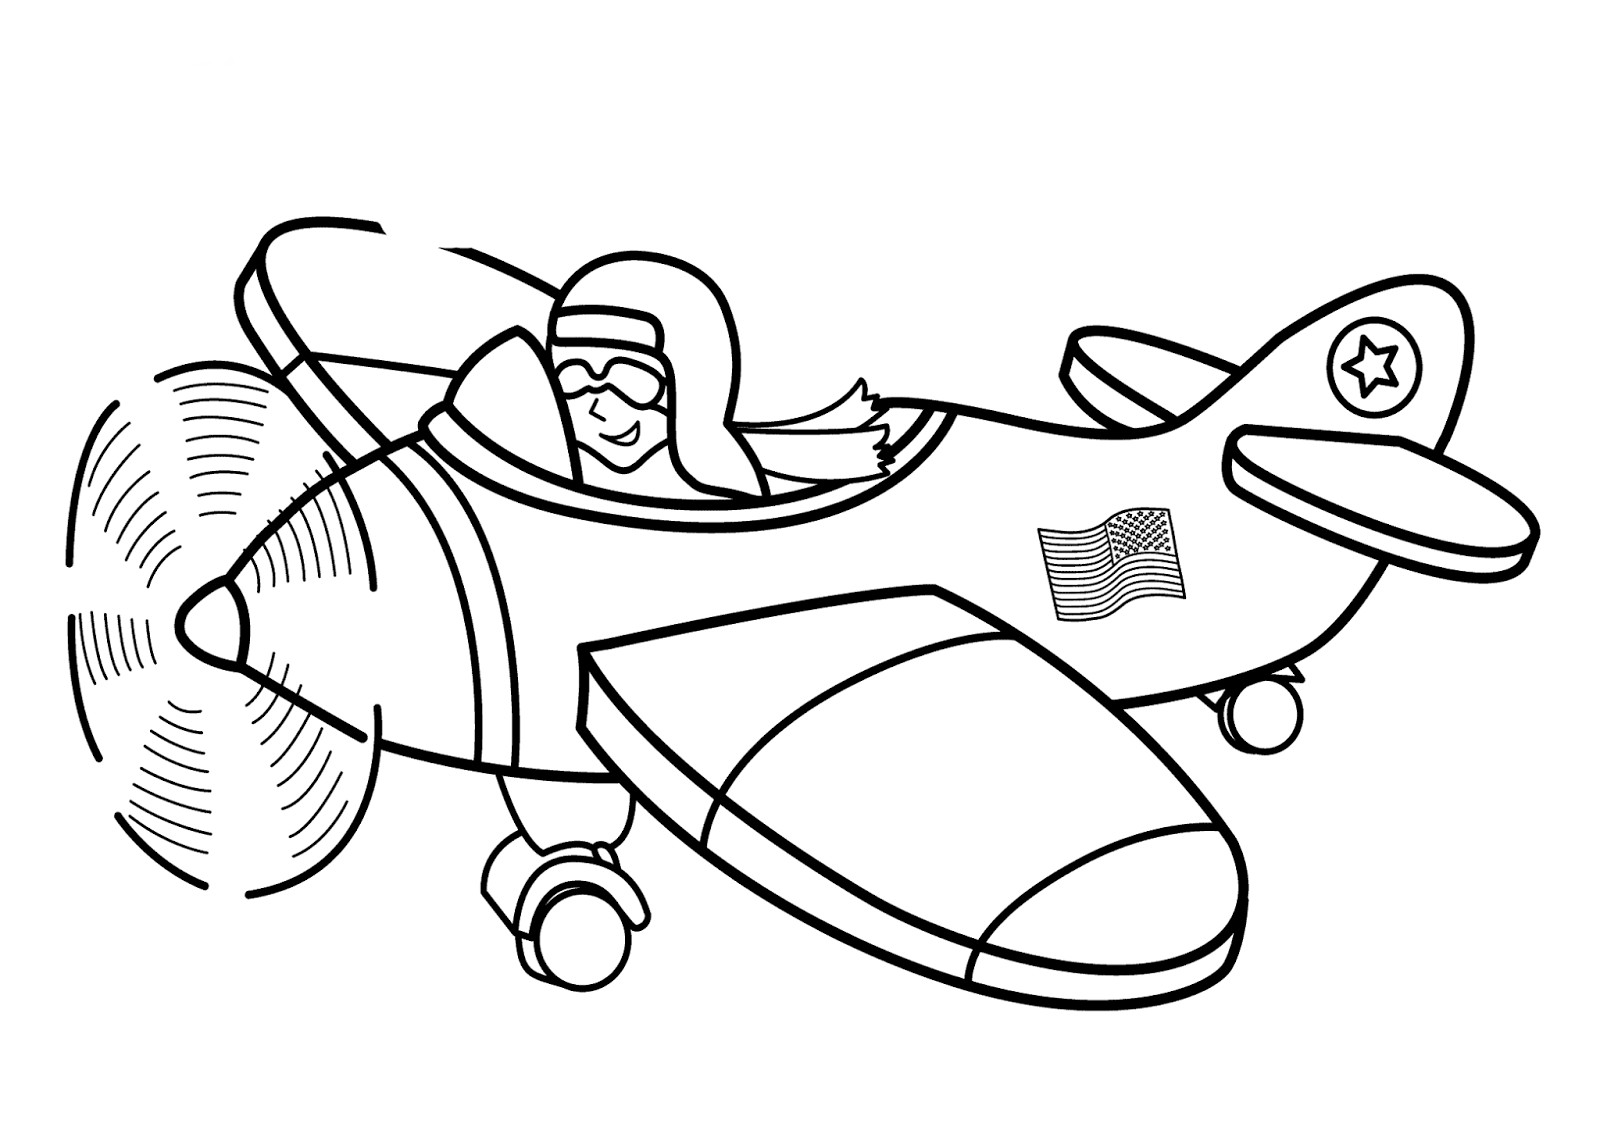 Best ideas about Planes Coloring Pages For Kids . Save or Pin Transportation For Kids Coloring Pages Now.